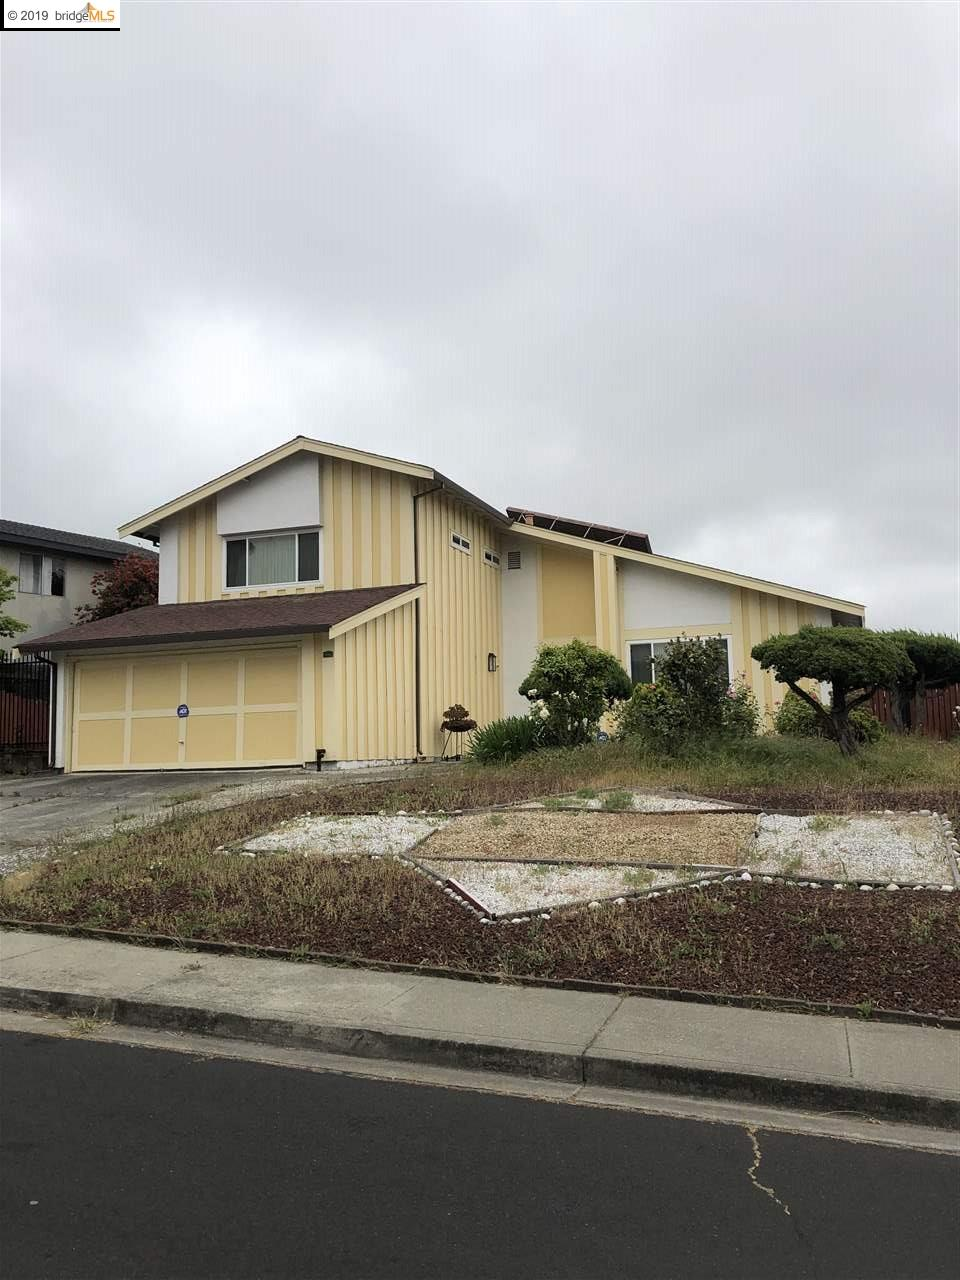 896 SANDY COVE DR, RODEO, CA 94572